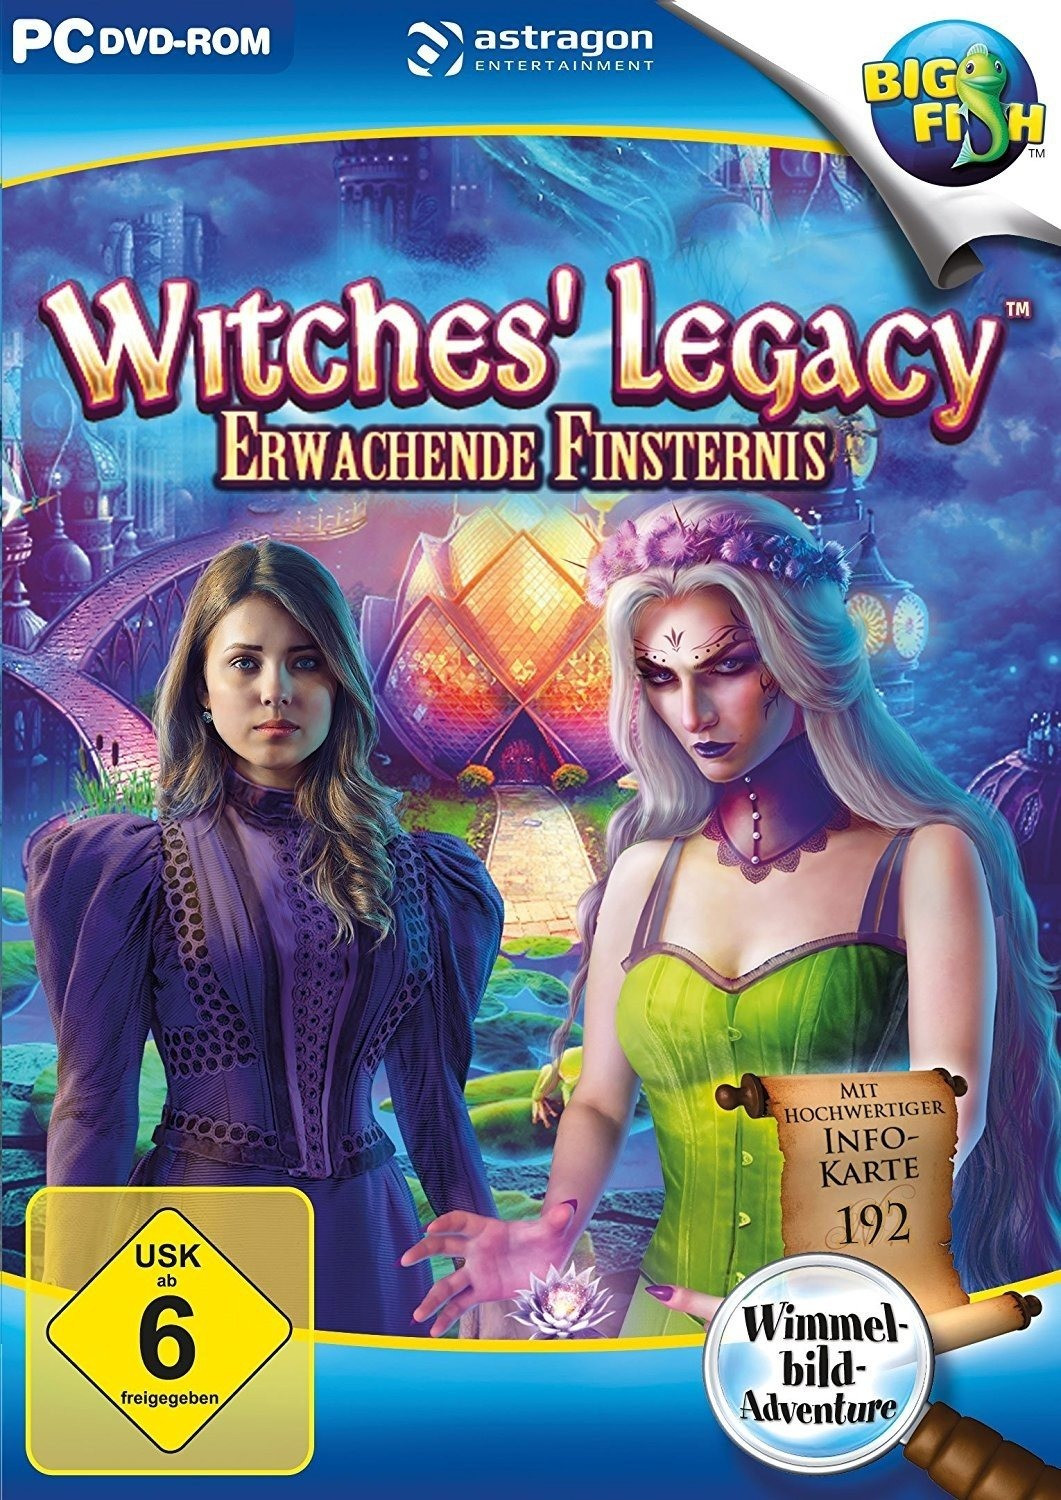 Witches Legacy: Erwachende Finsternis (PC)